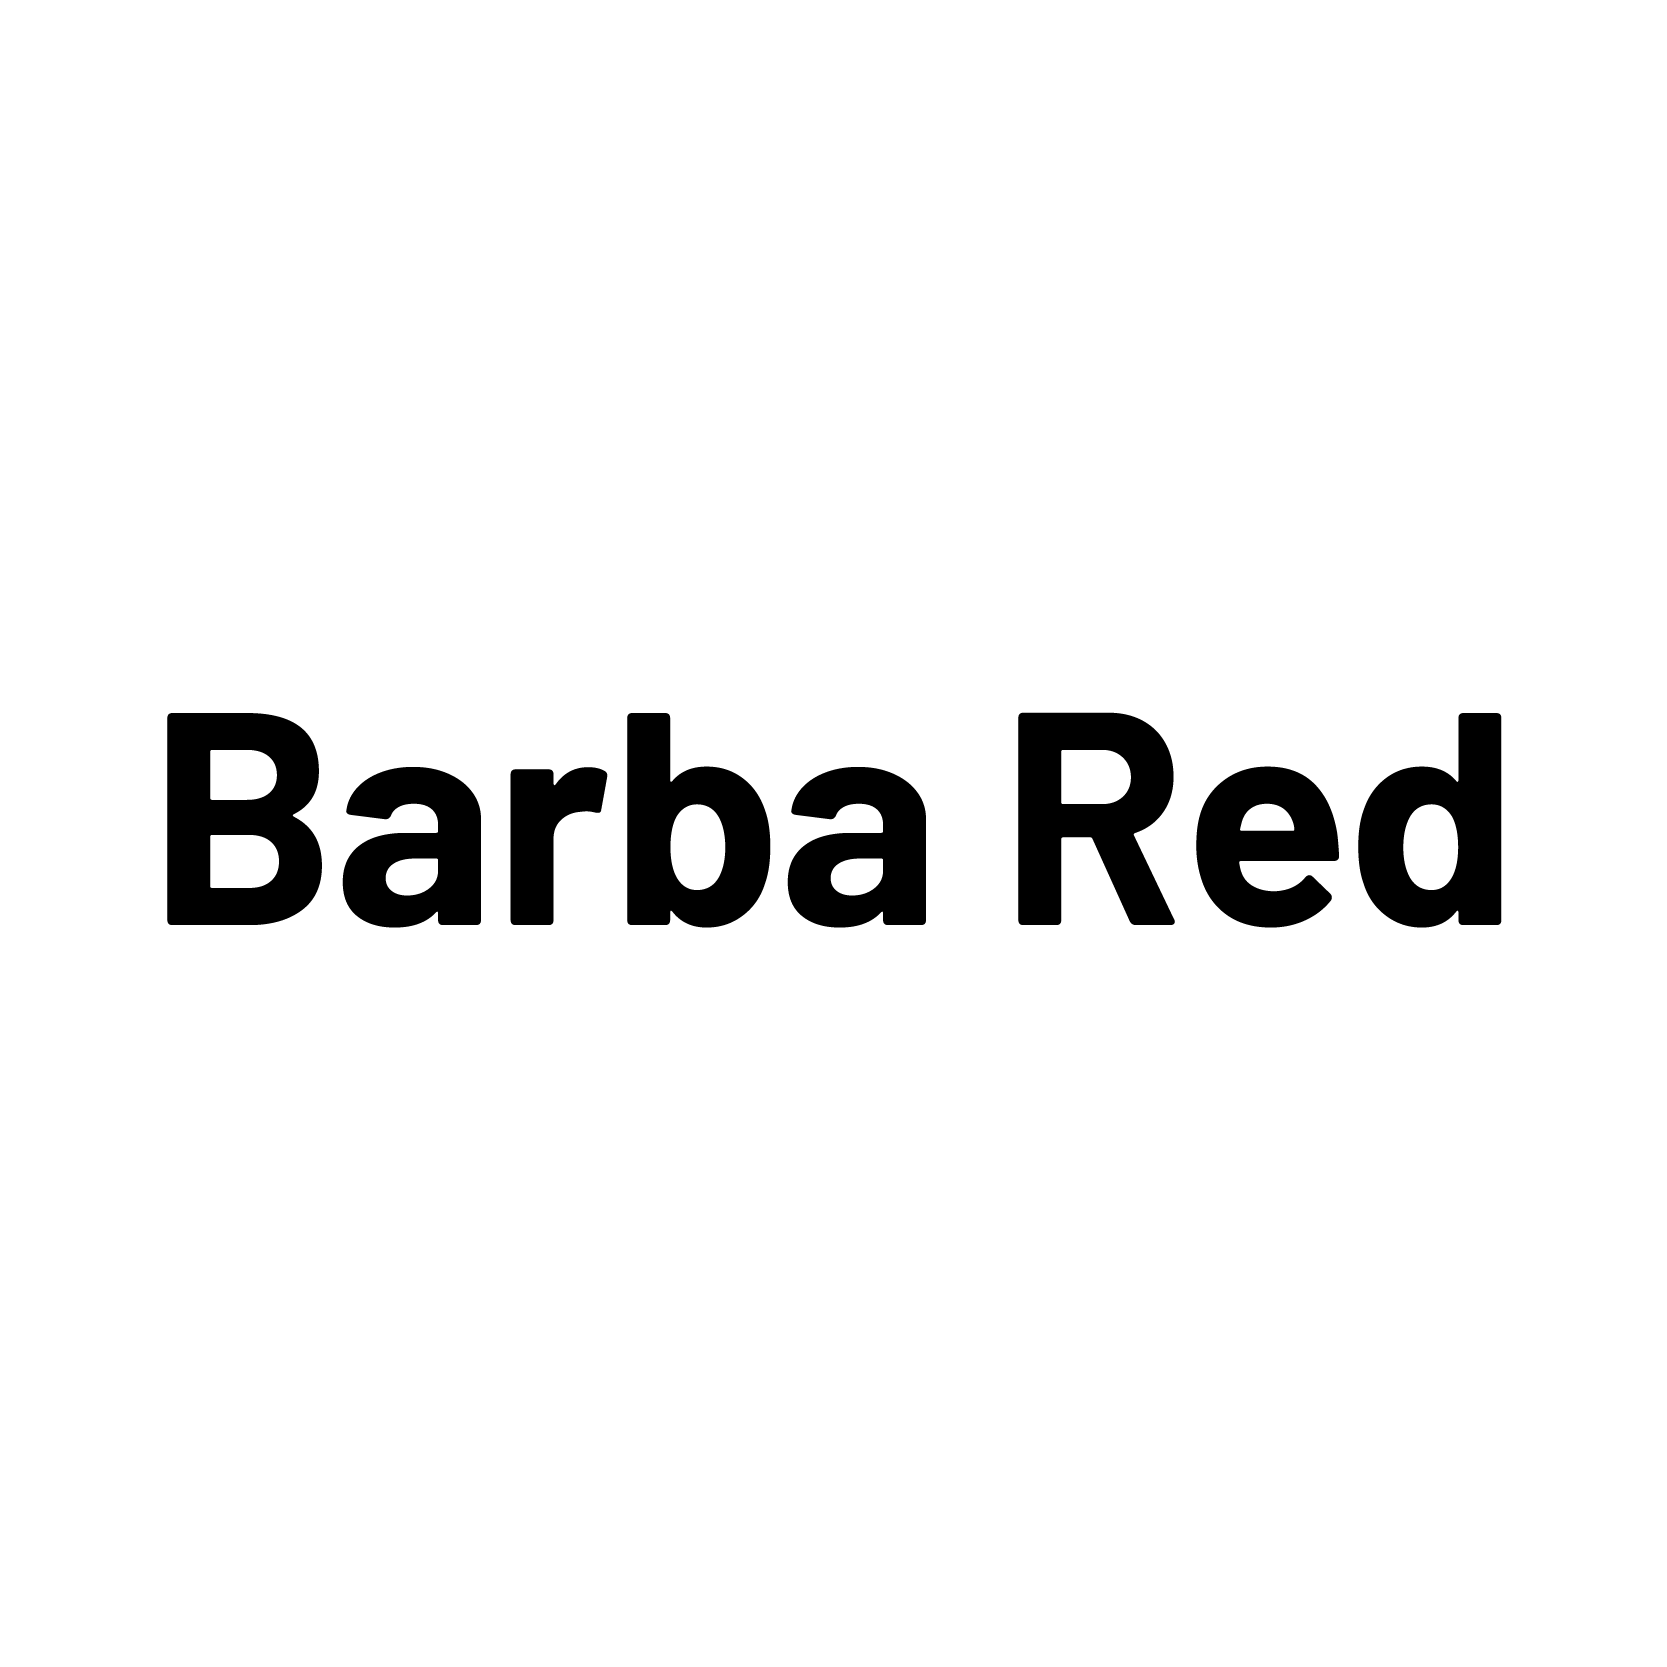 Barba Red